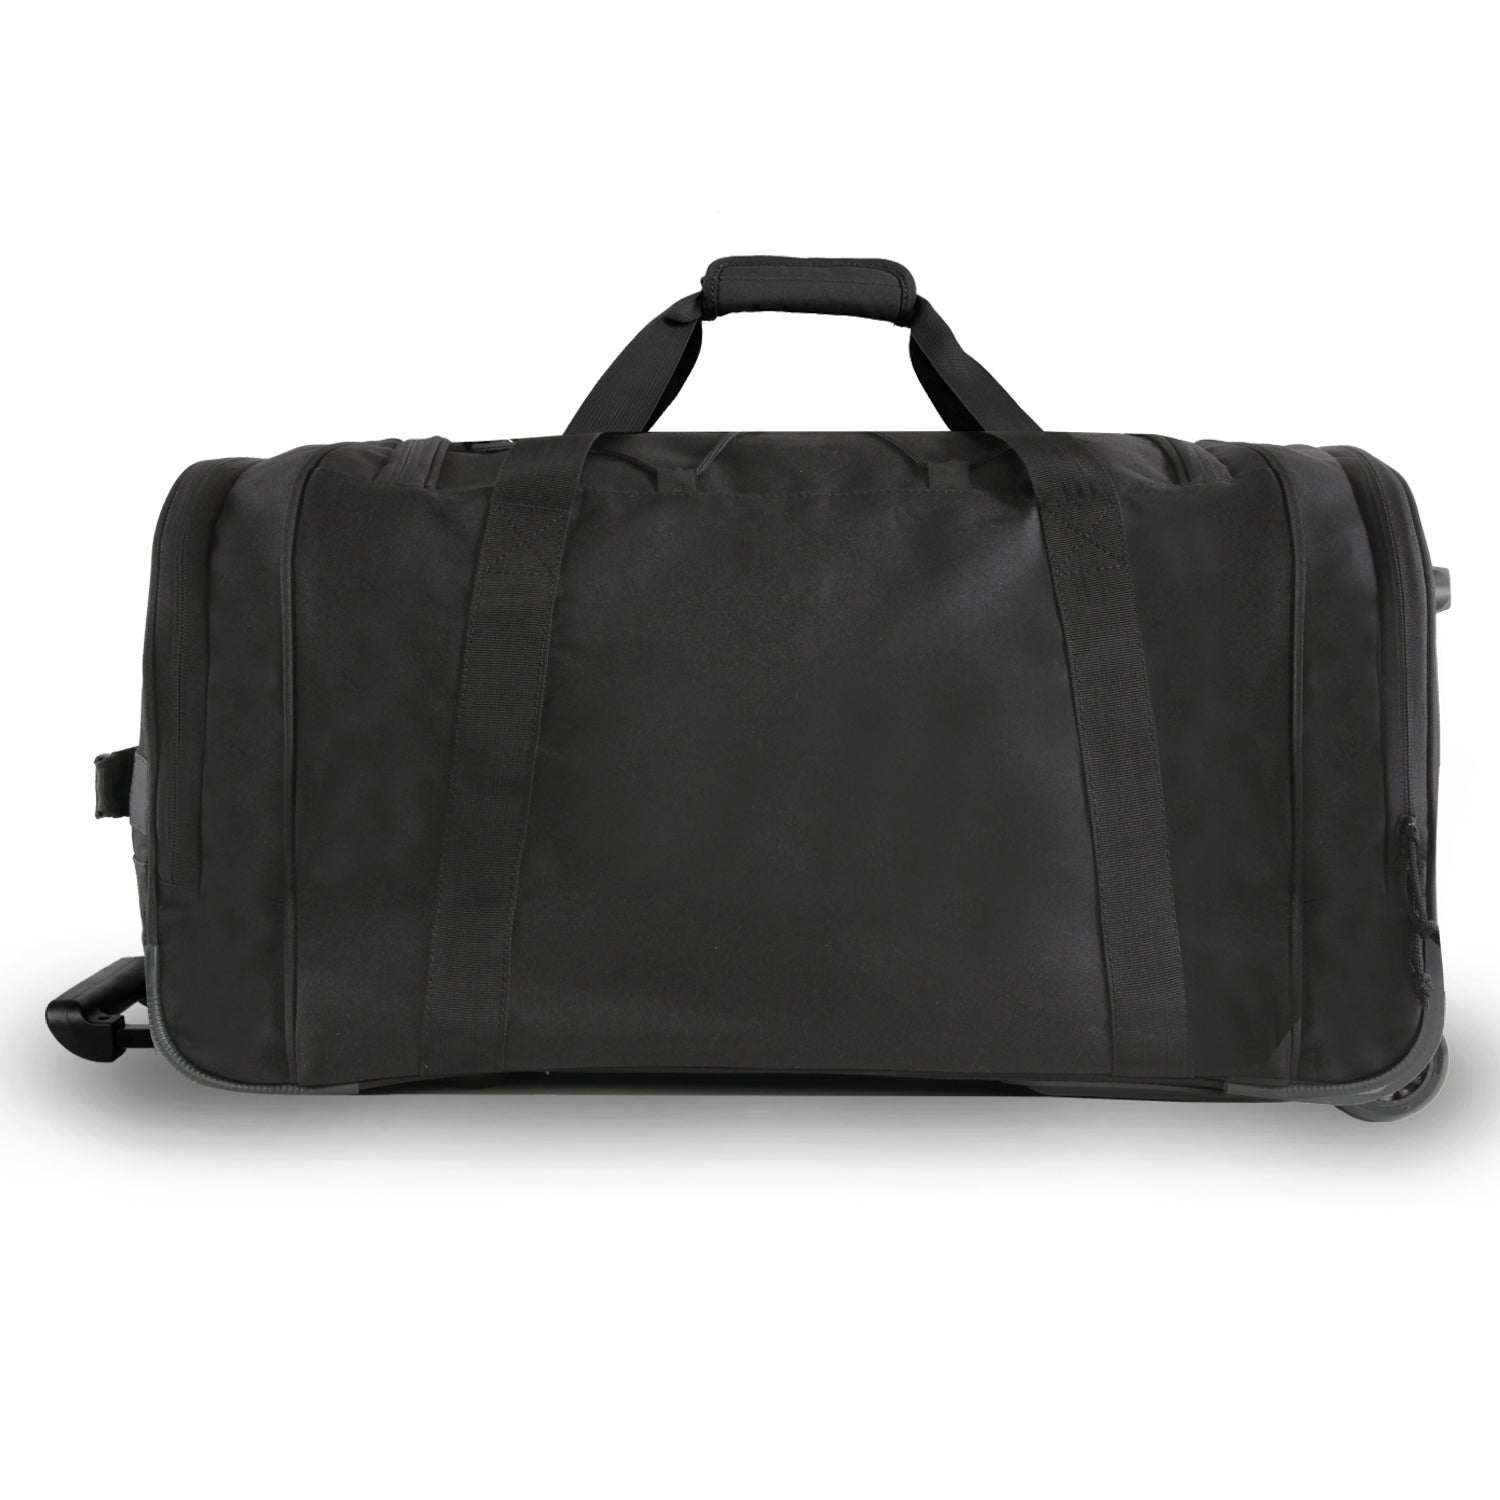 0bcd00717c3a Shop Highland Tactical Squad 30-inch Large Tactical Rolling Duffel Bag - Free  Shipping Today - Overstock - 16963730